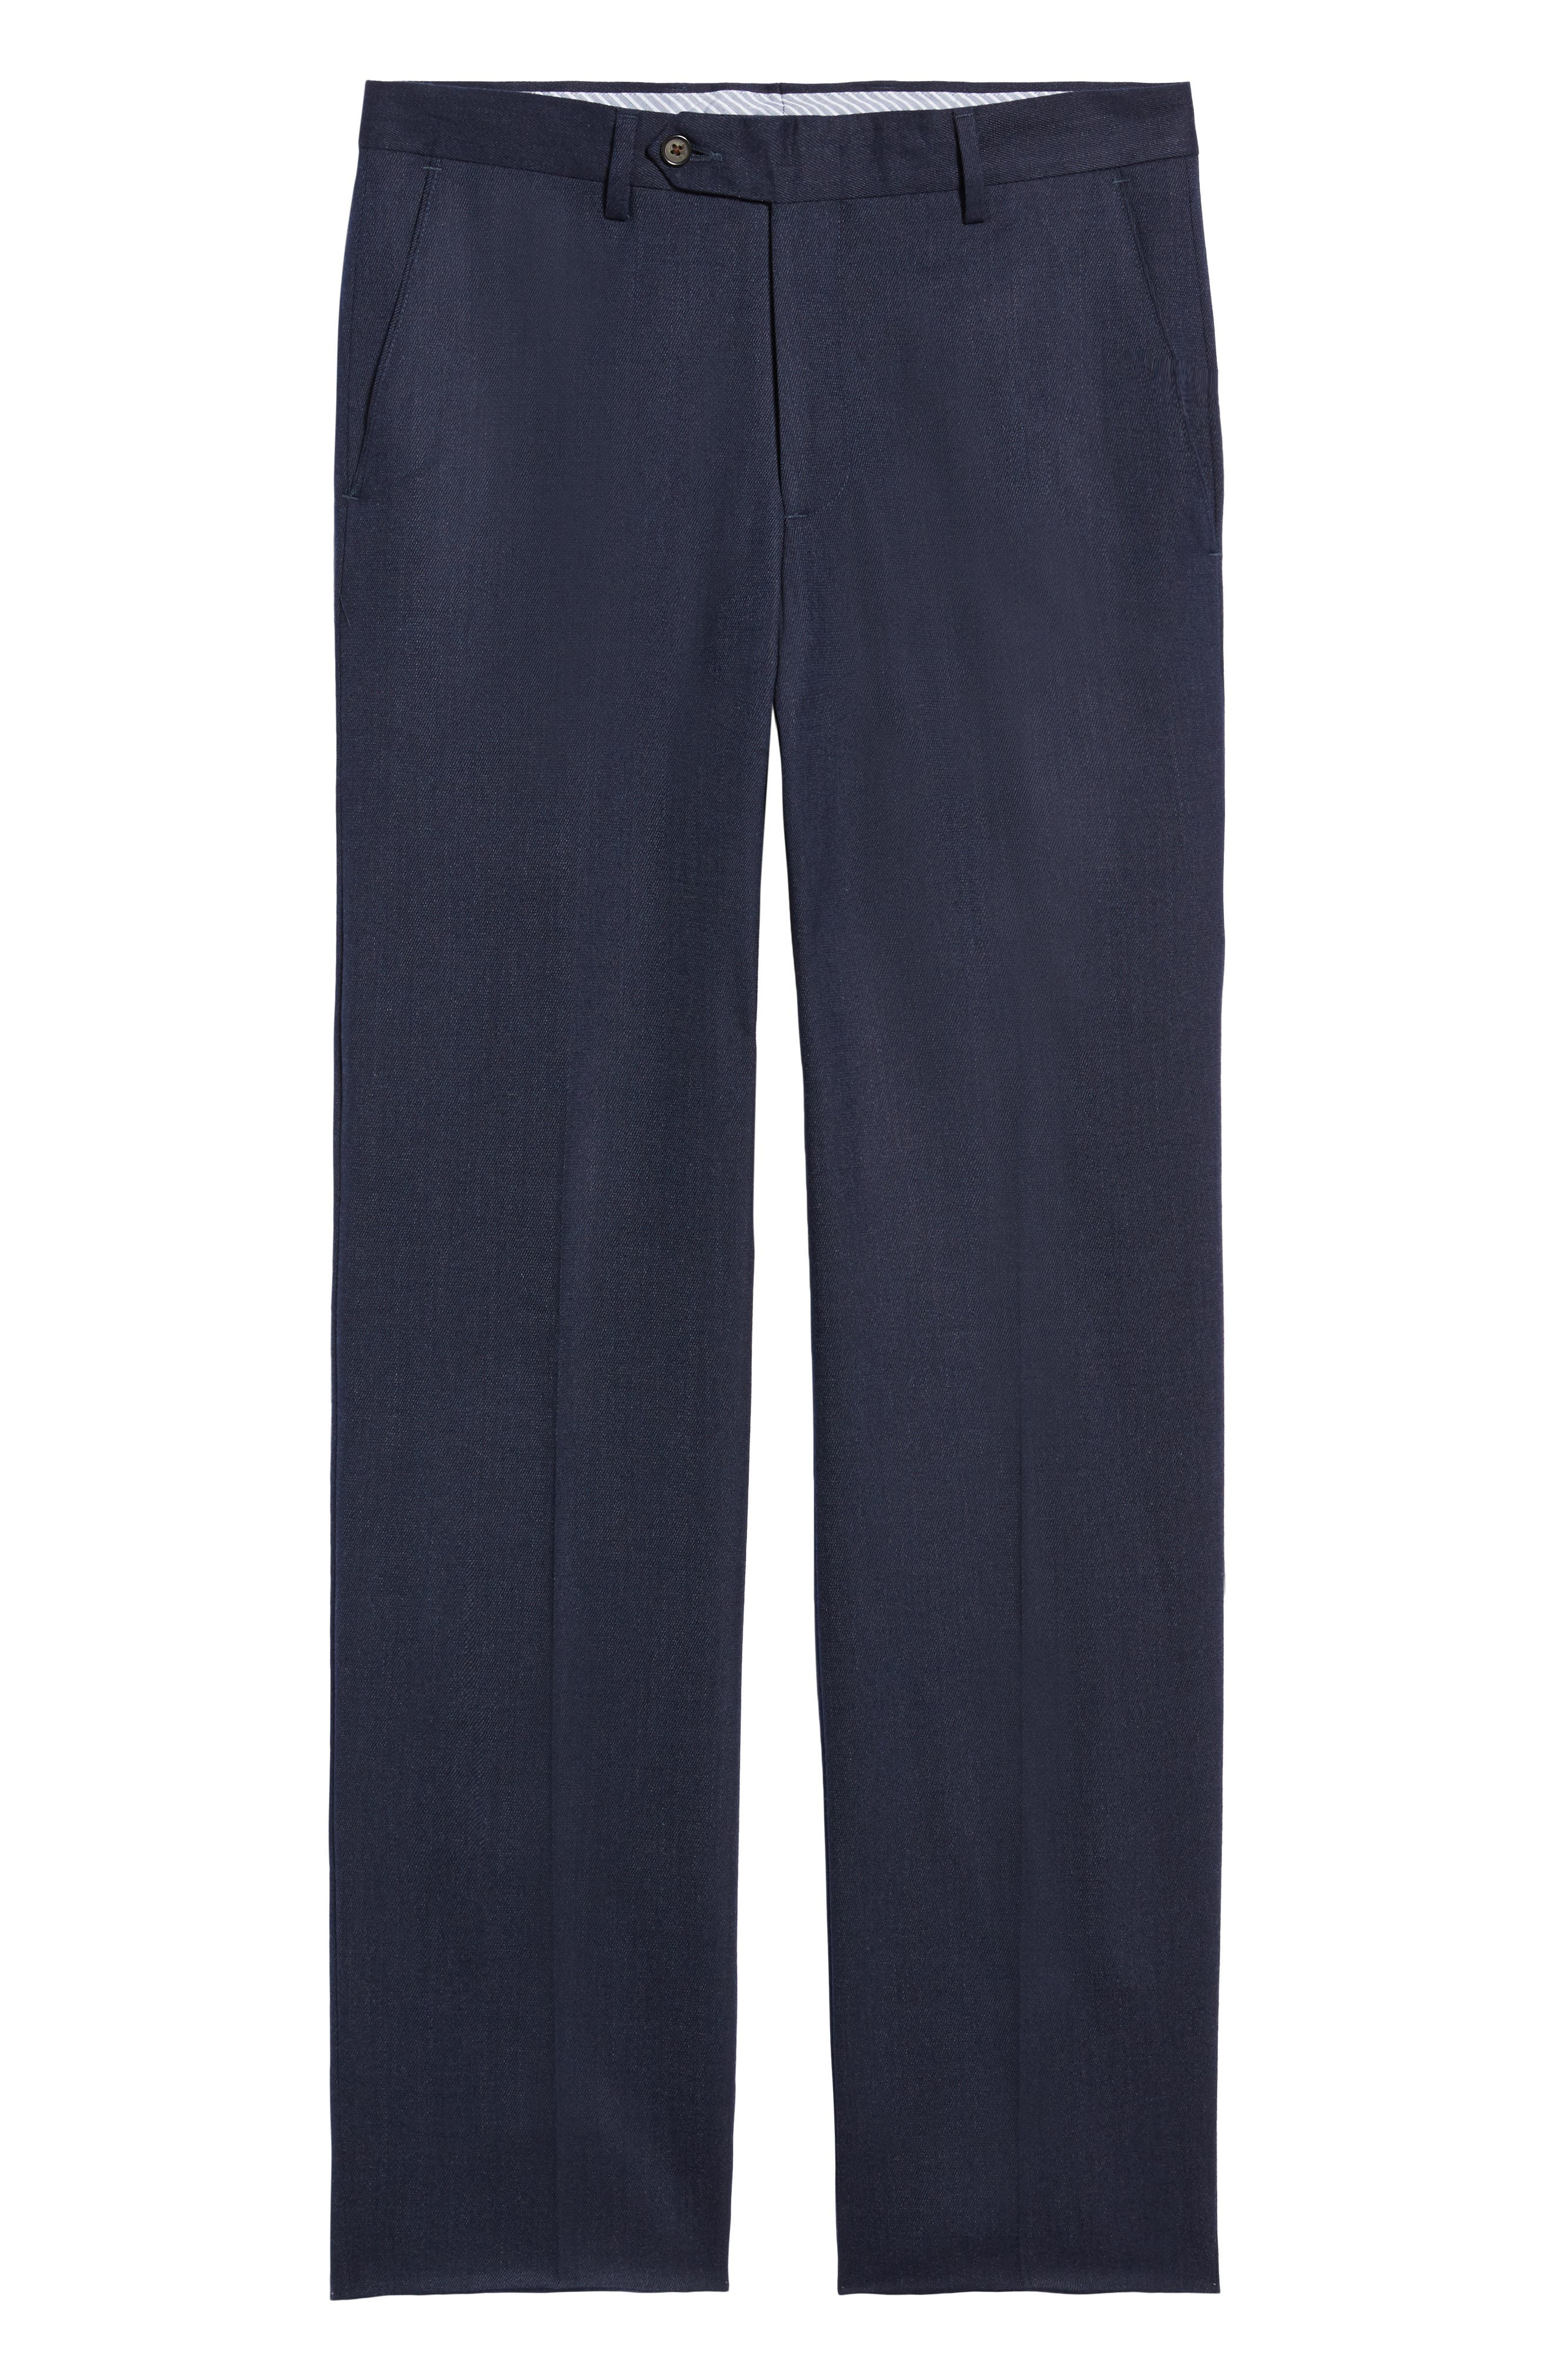 Flat Front Stretch Solid Wool & Cotton Trousers,                             Alternate thumbnail 6, color,                             BLUE